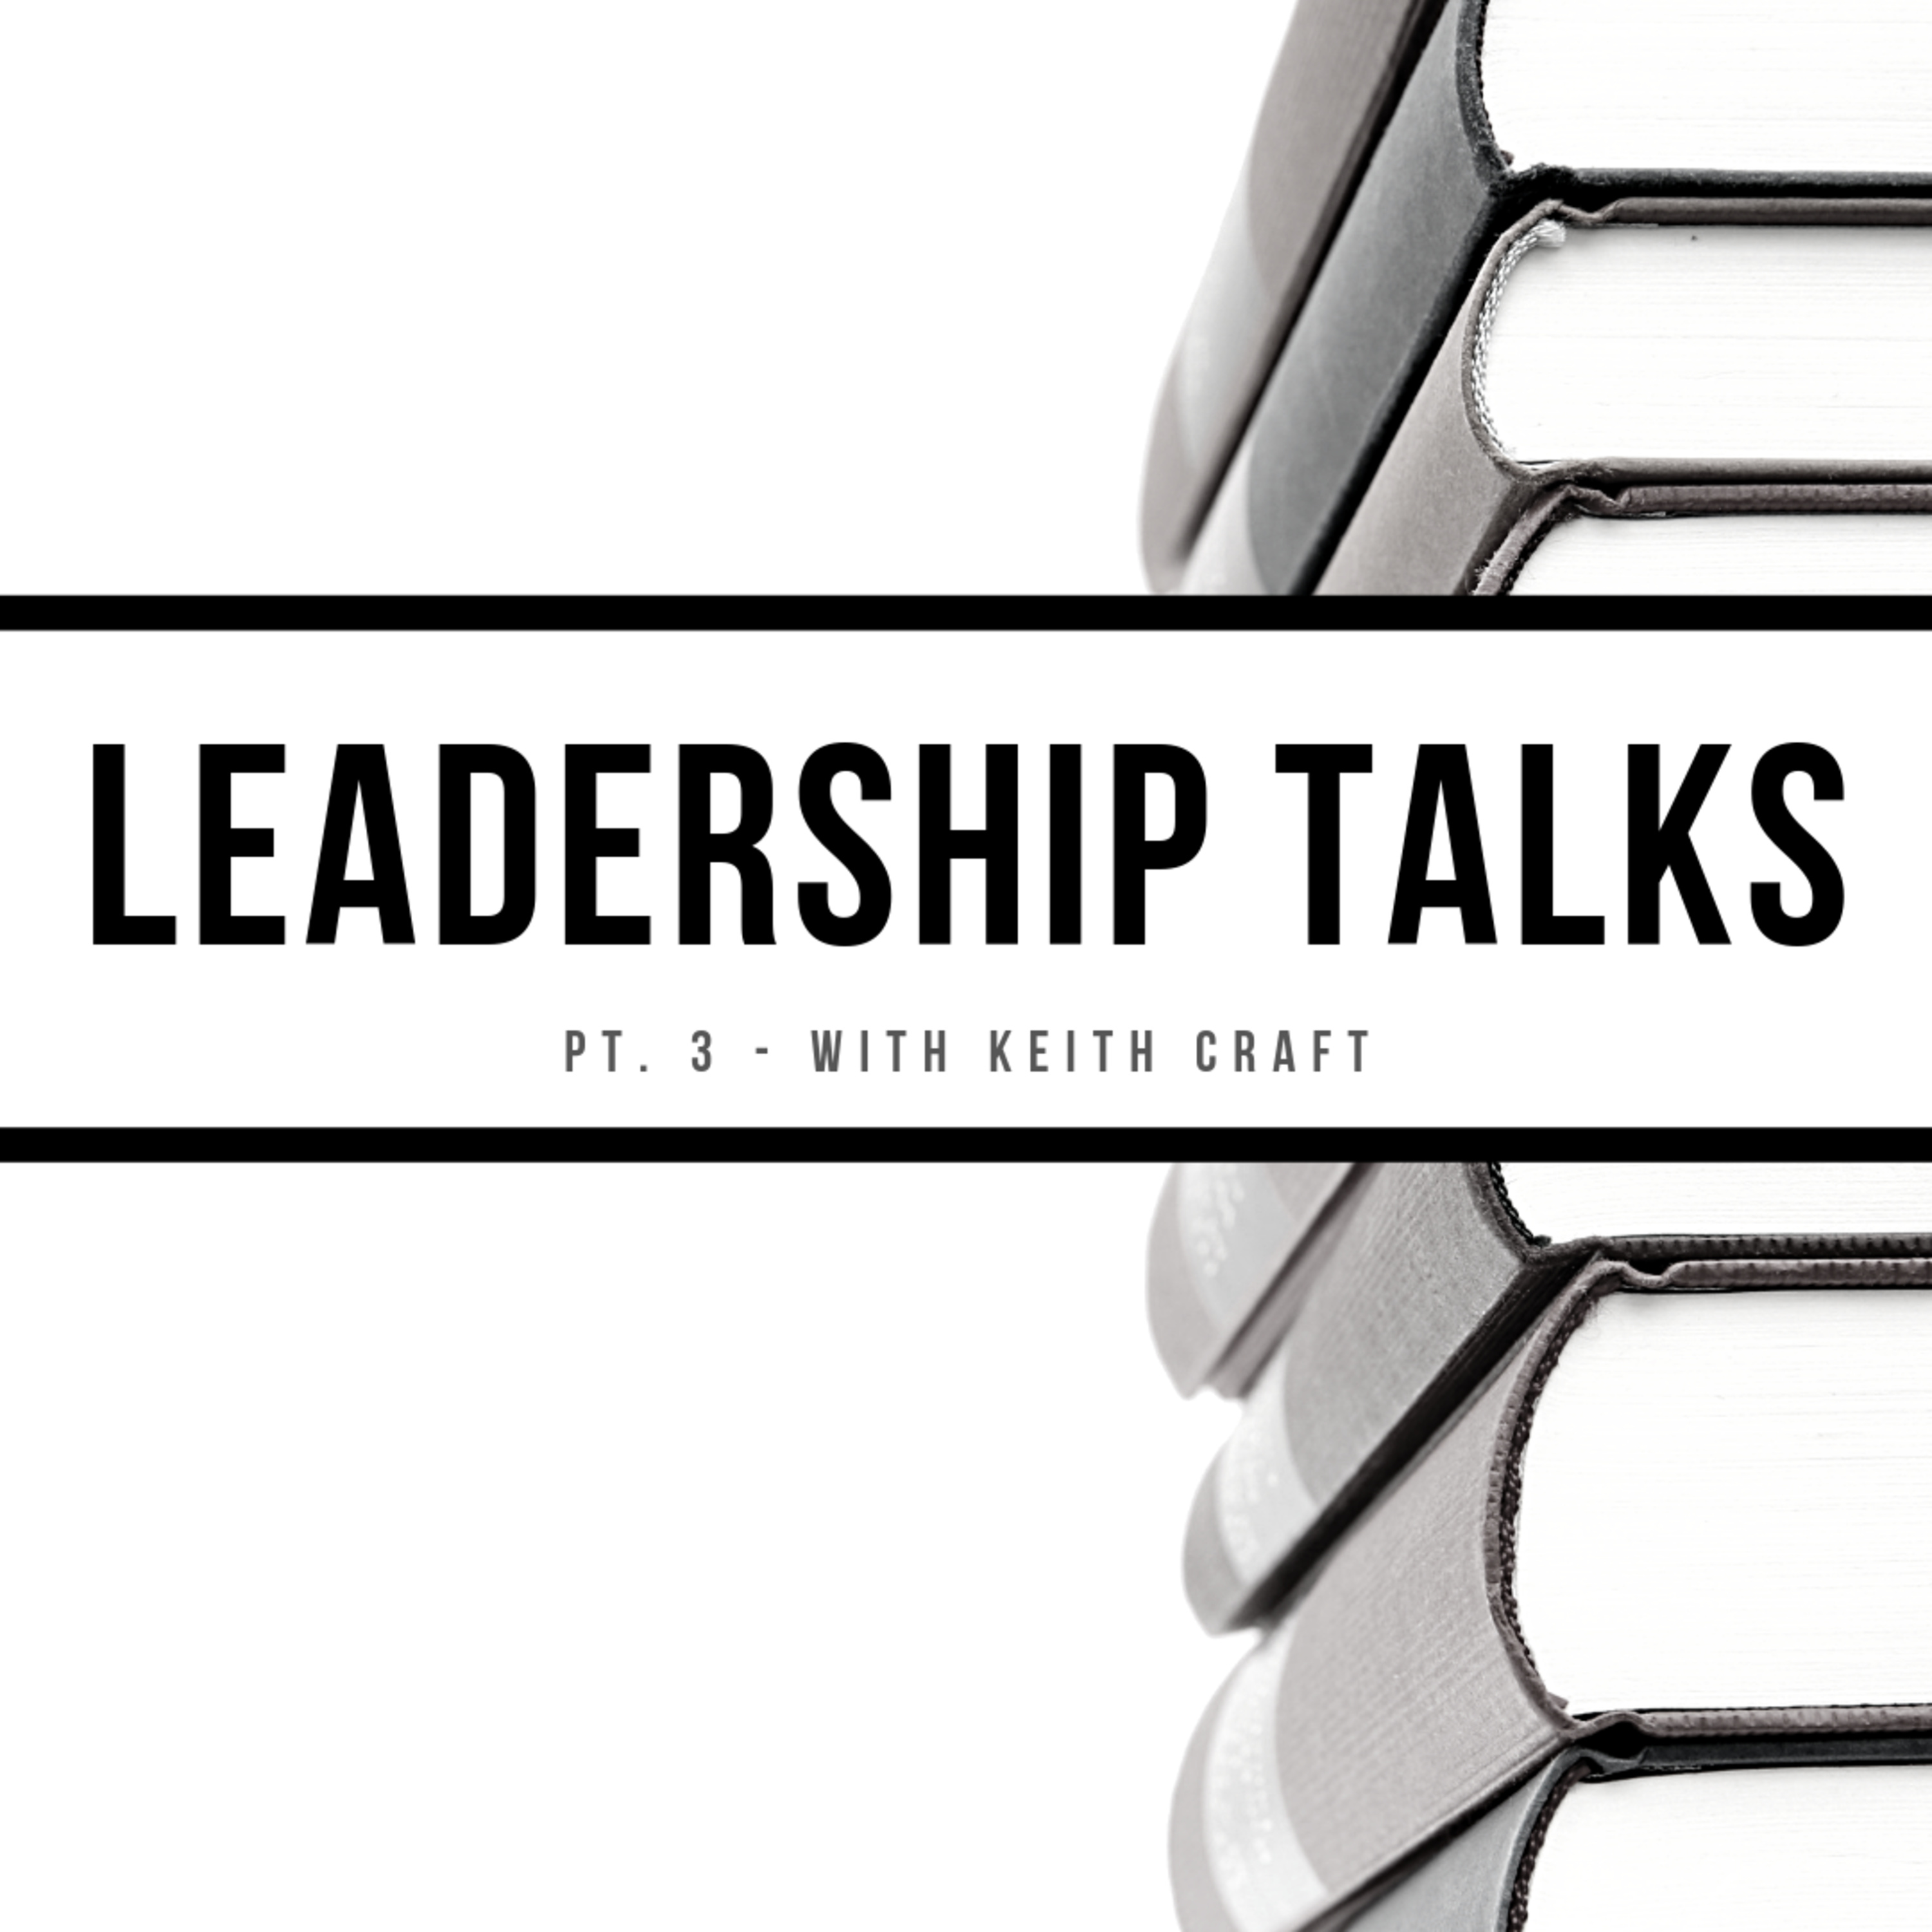 LEADERSHIP TALKS: BEING POSITIVE IN A NEGATIVE SITUATION (W/ KEITH CRAFT PT. 3)